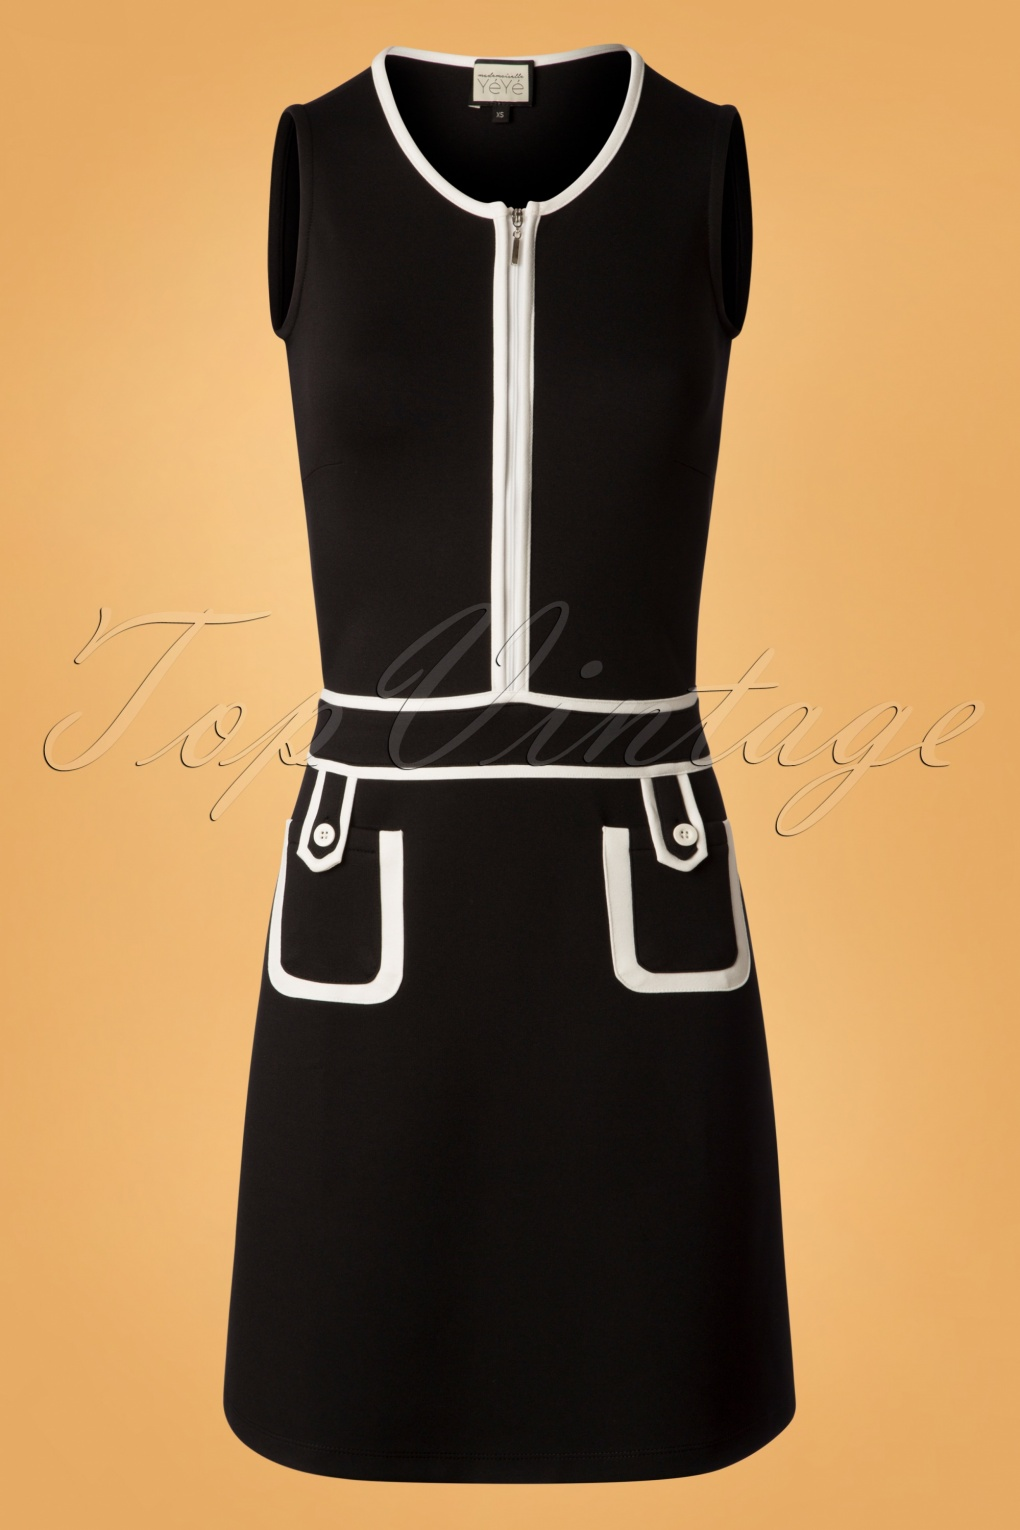 1960s Style Dresses, Clothing, Shoes UK 60s Hip Movements Mod Dress in Black and White £72.18 AT vintagedancer.com